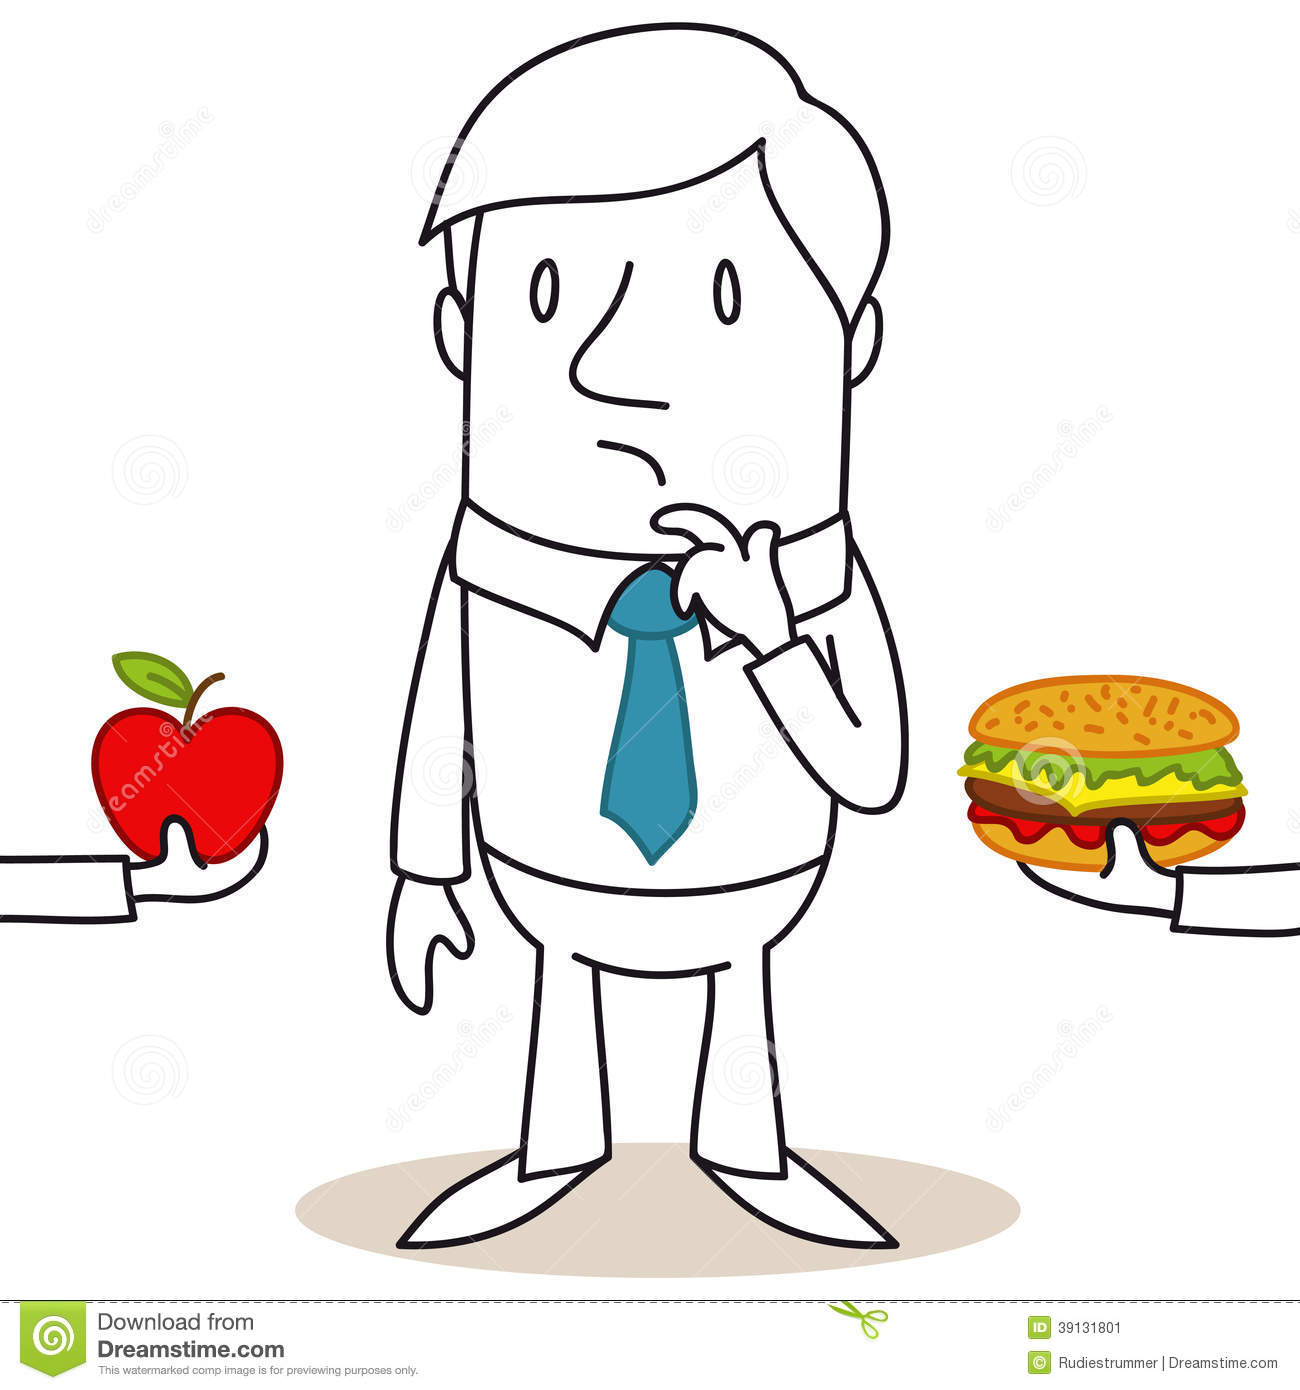 Cartoon Man Healthy   Junk Food Decision Stock Vector   Image